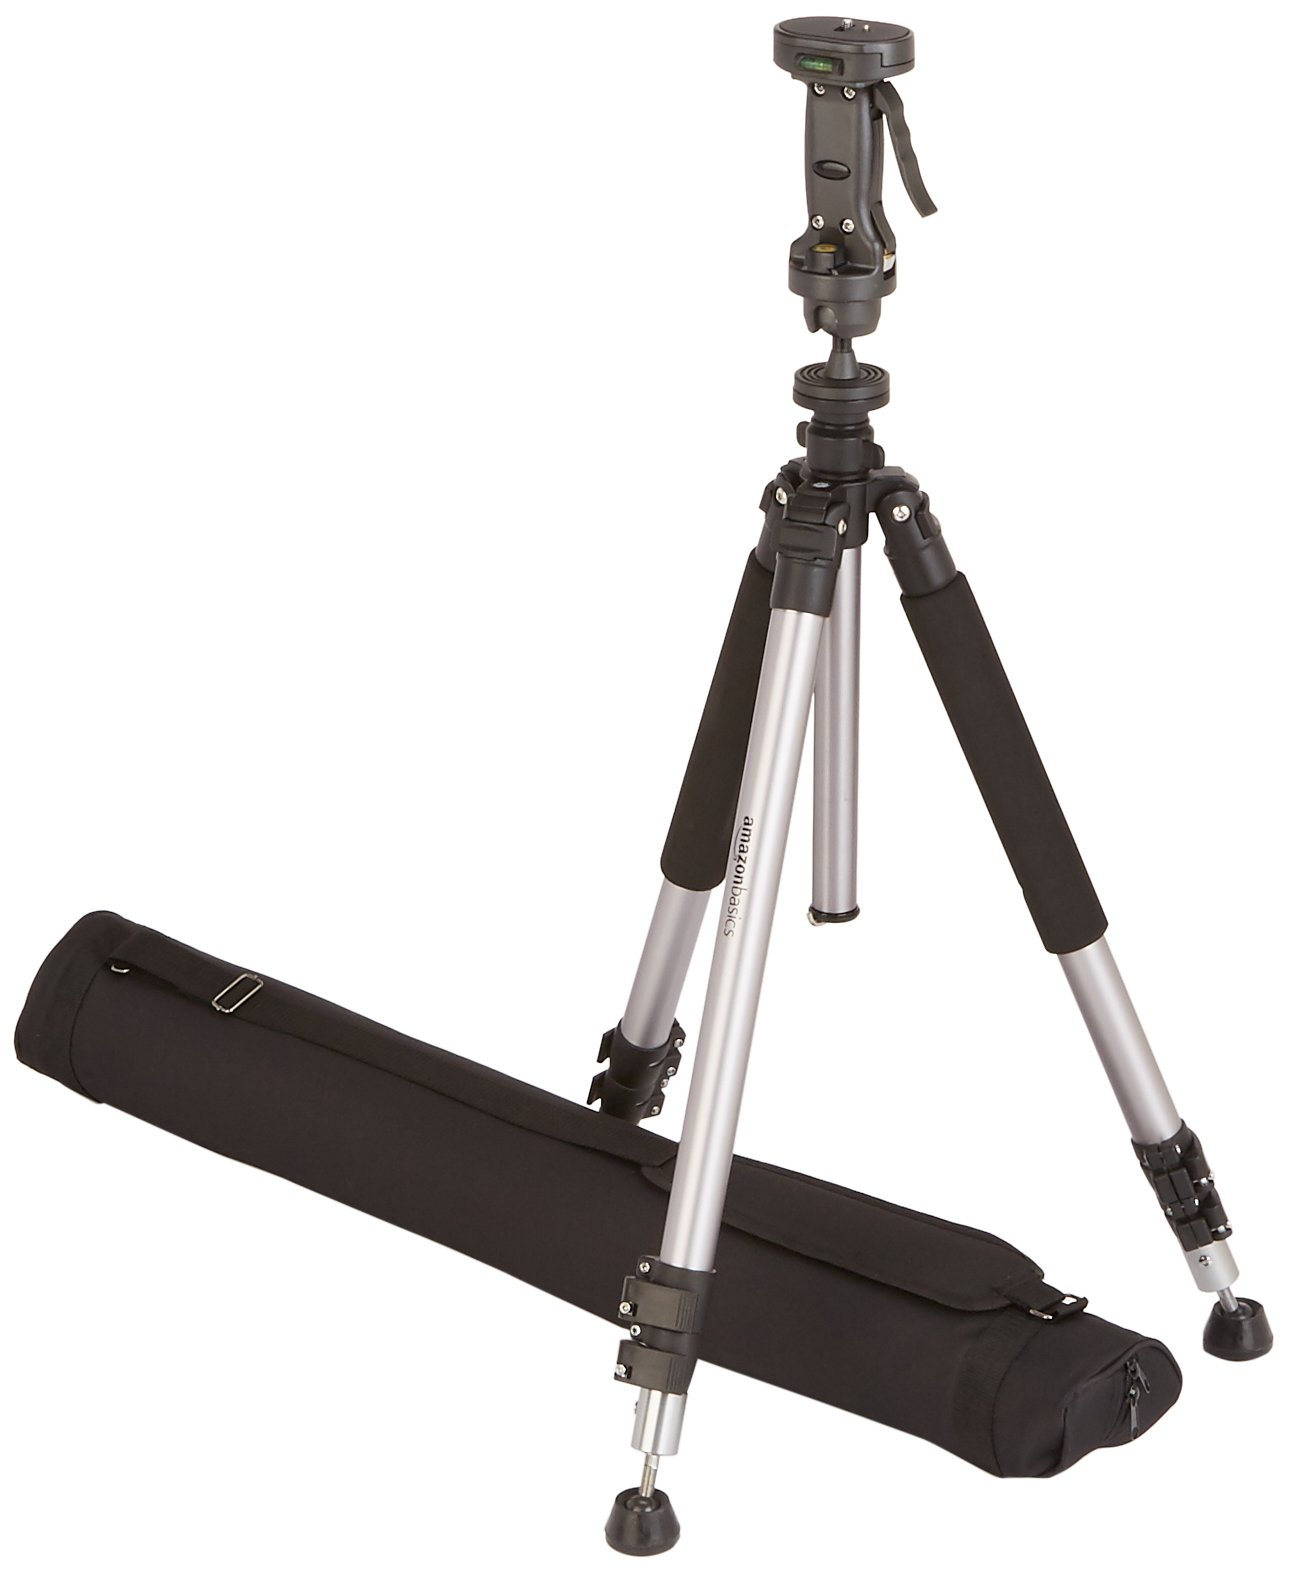 Amazon Basics Pistol Grip Camera Travel Tripod With Bag - 34.4 - 72.6 Inches, Black